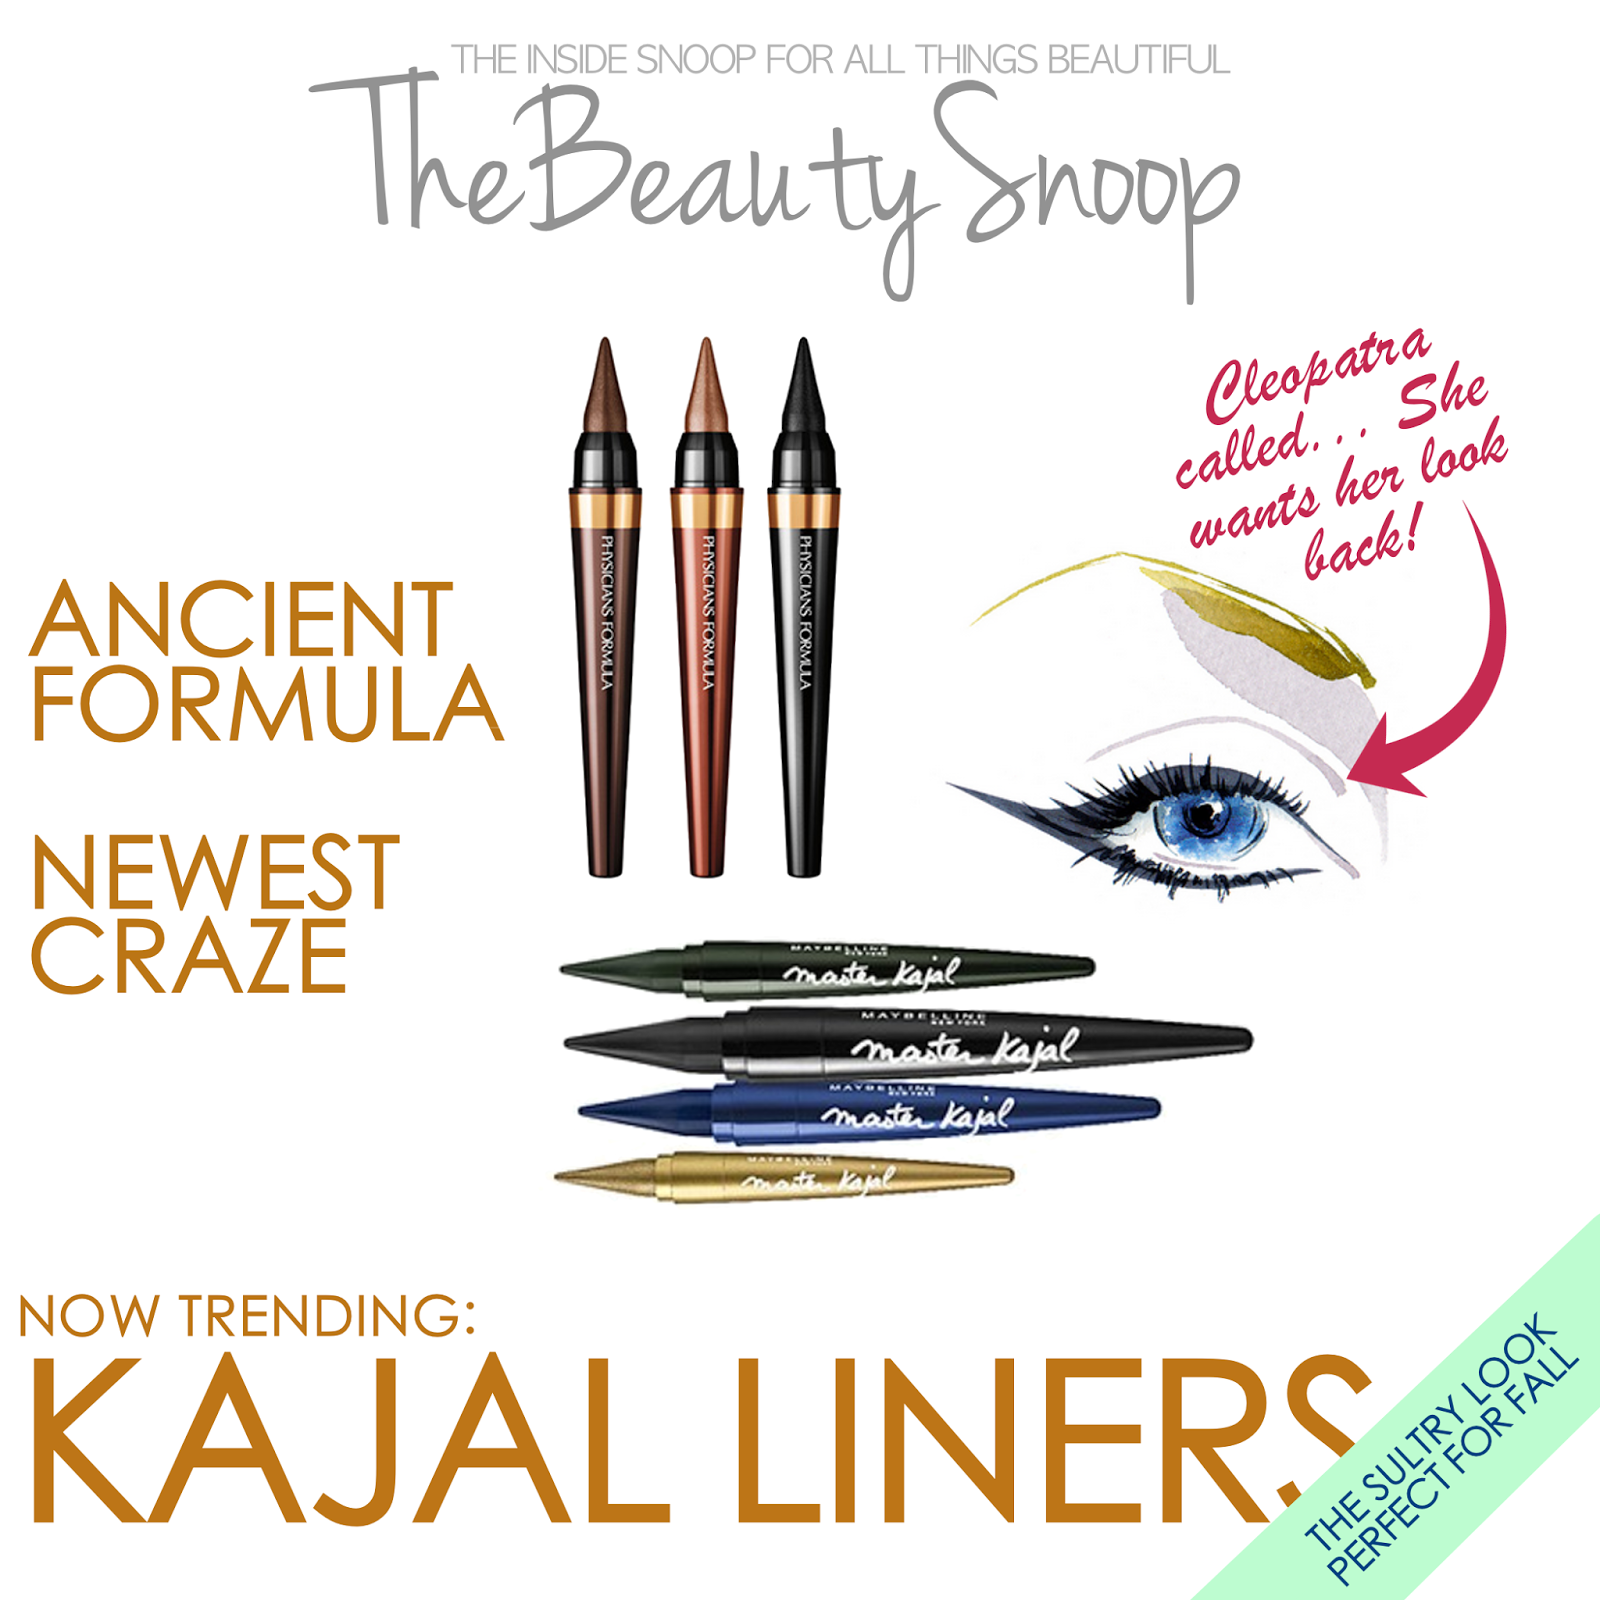 ancient egyptian beauty, now resurfacing as the latest trend in makeup; the kajal liner. Physicians Formula Kajal, Maybelline Master Kajal